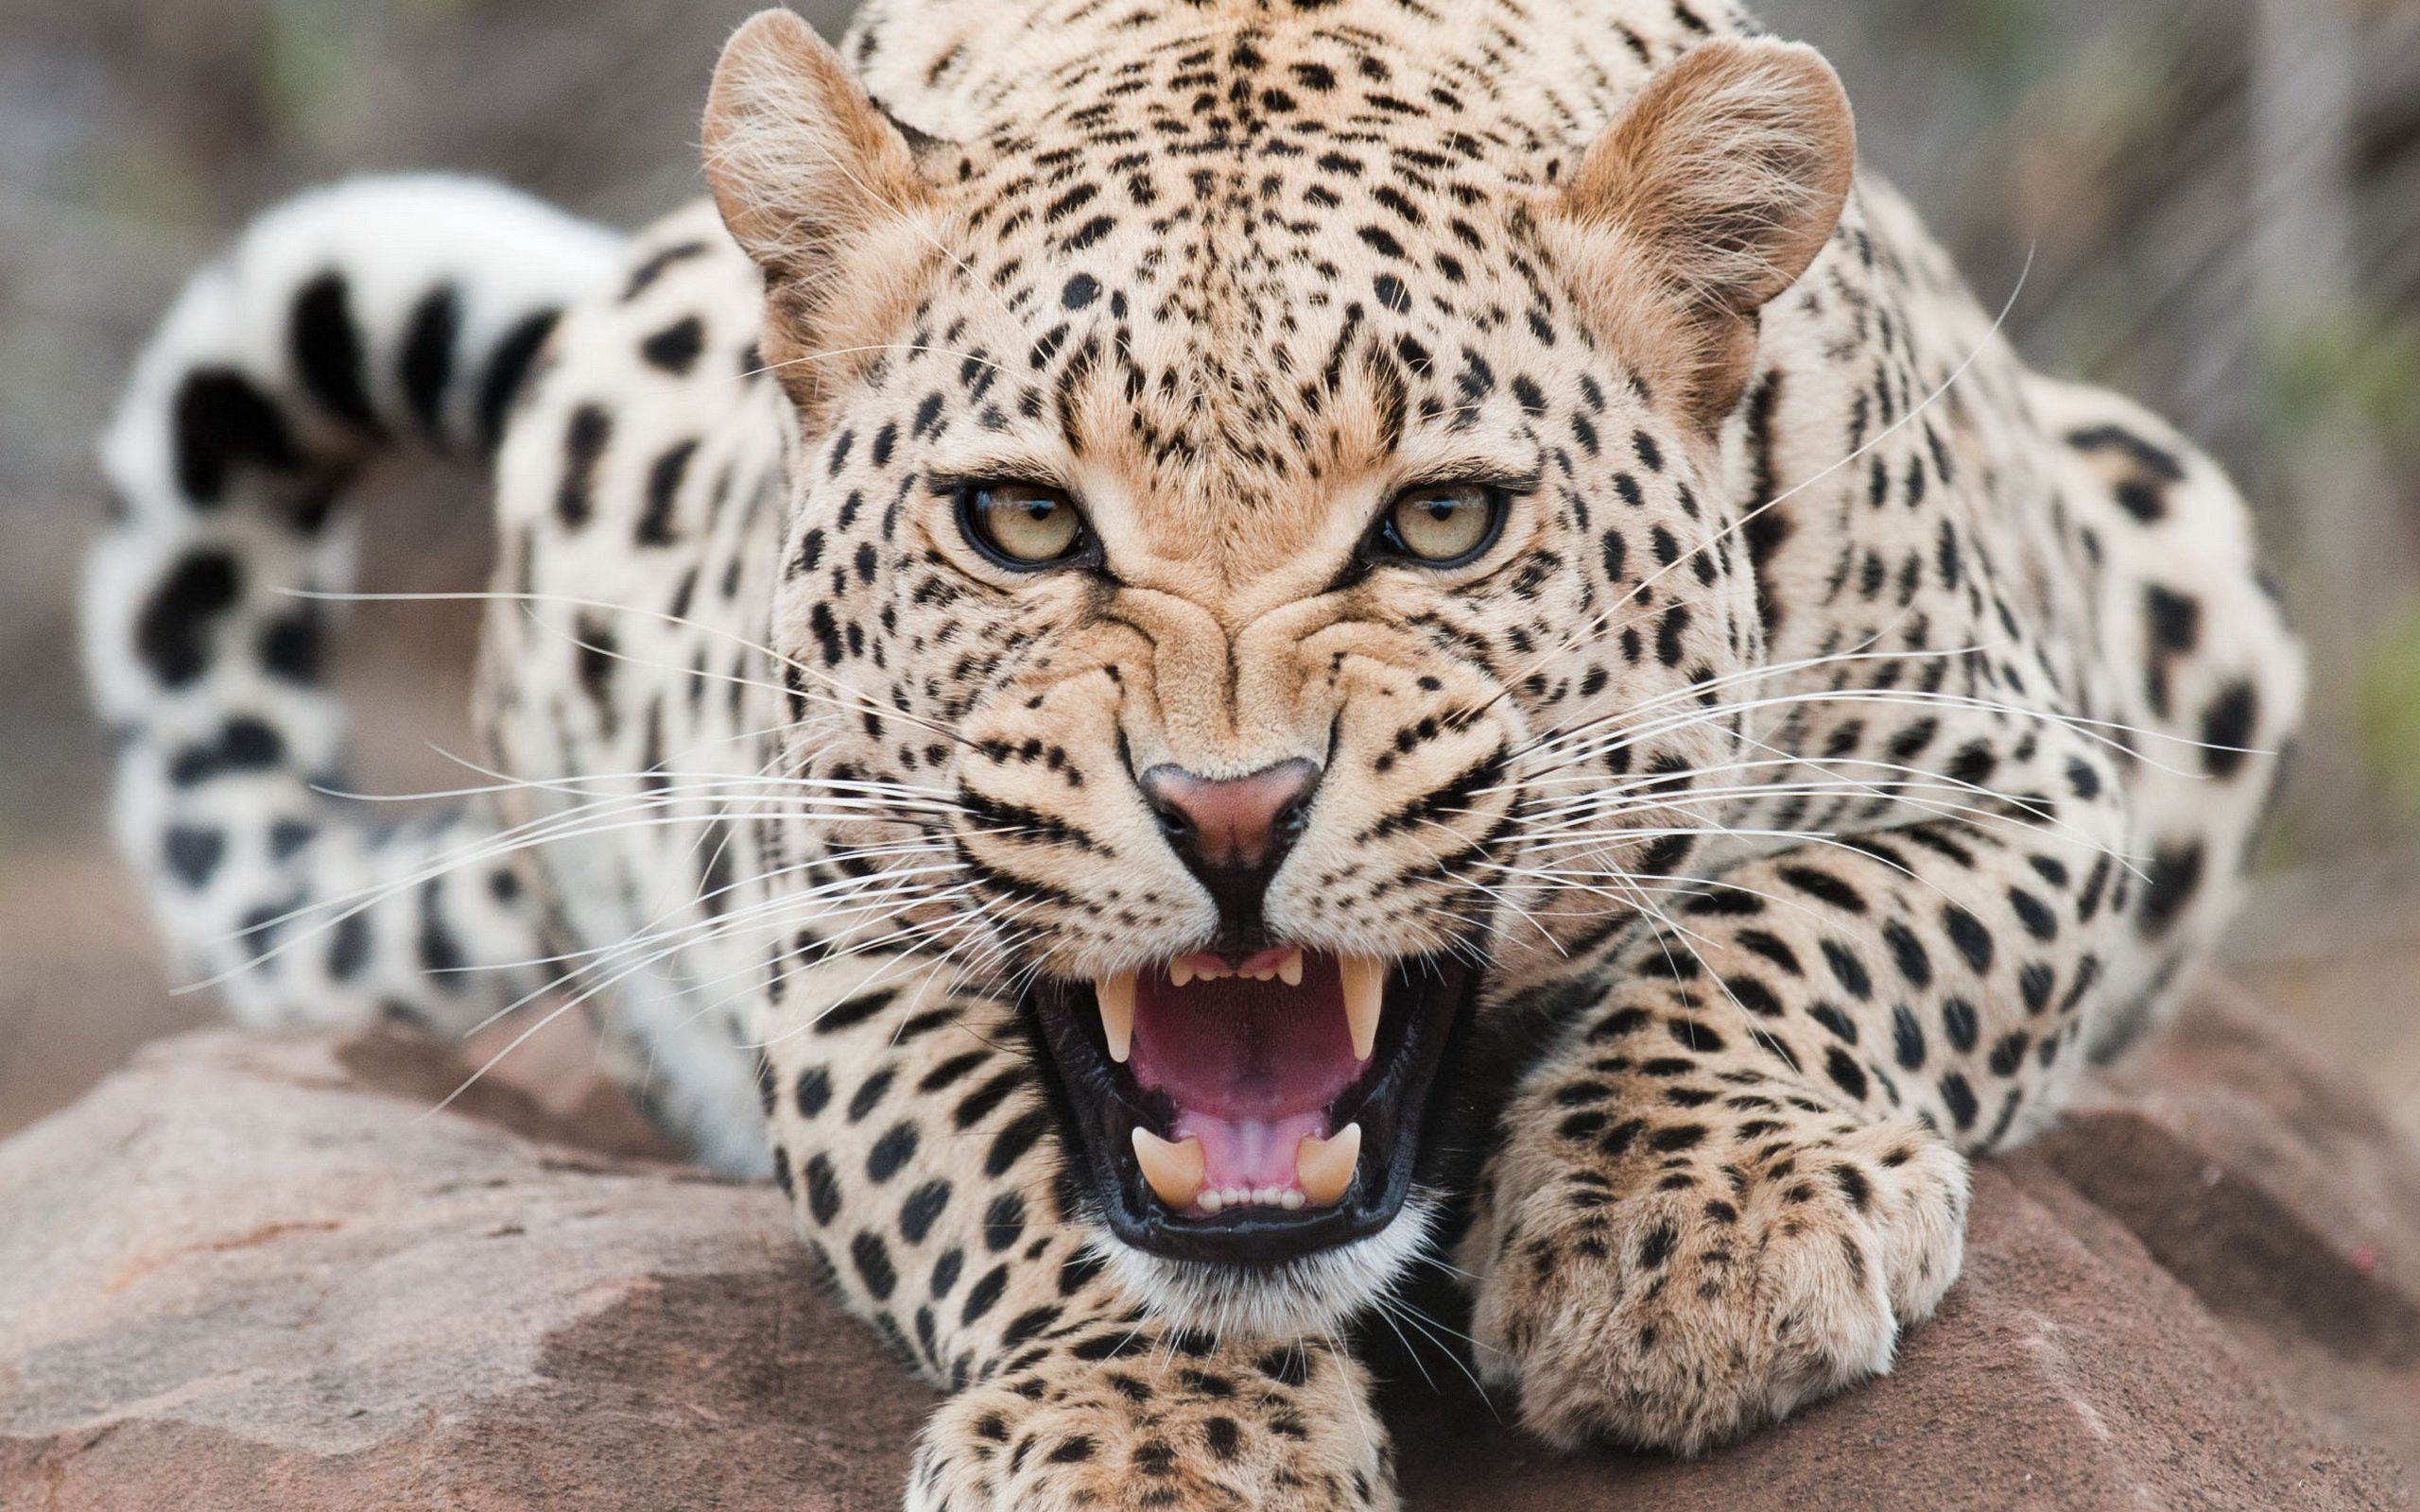 62525 download wallpaper Animals, Leopard, Aggression, Grin, Muzzle screensavers and pictures for free